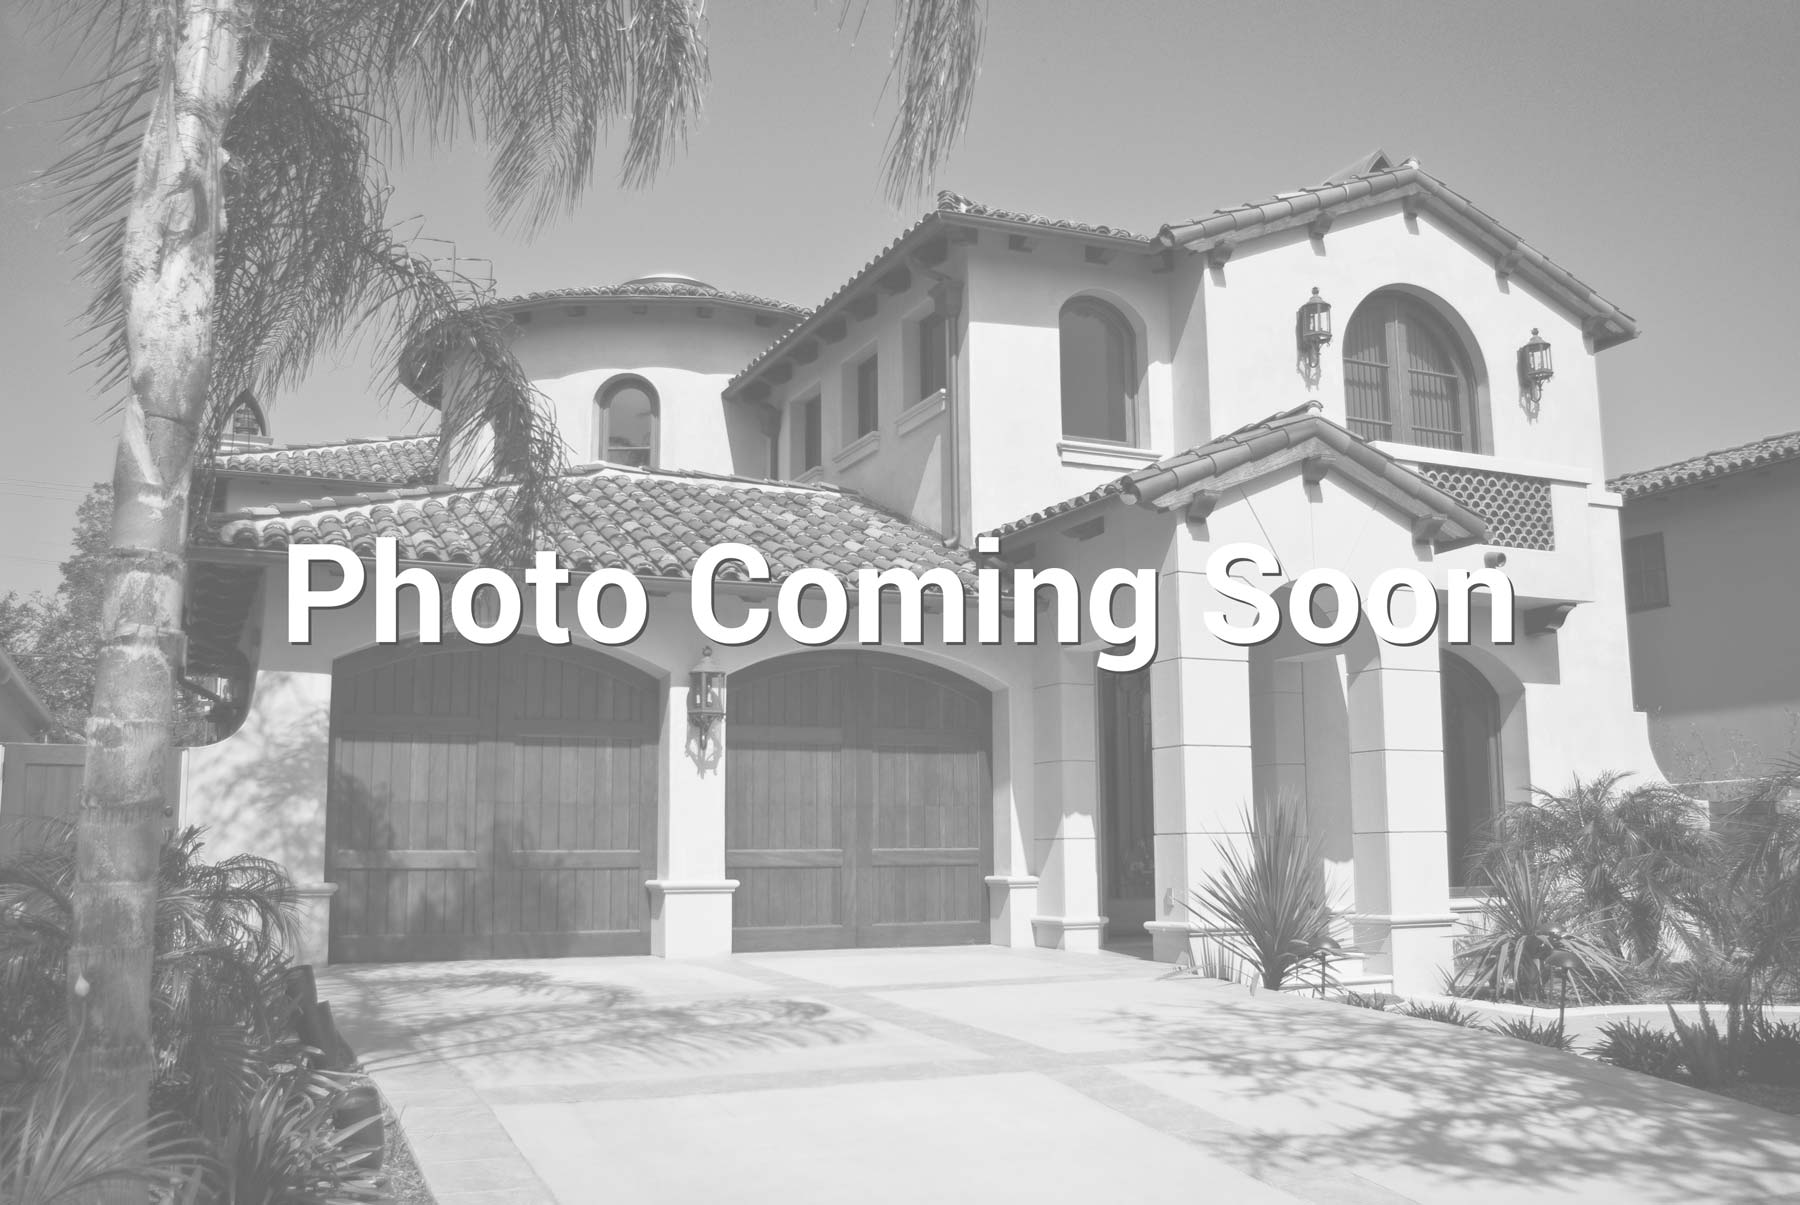 $469,900 - 3Br/2Ba -  for Sale in Lemon Grove, Lemon Grove